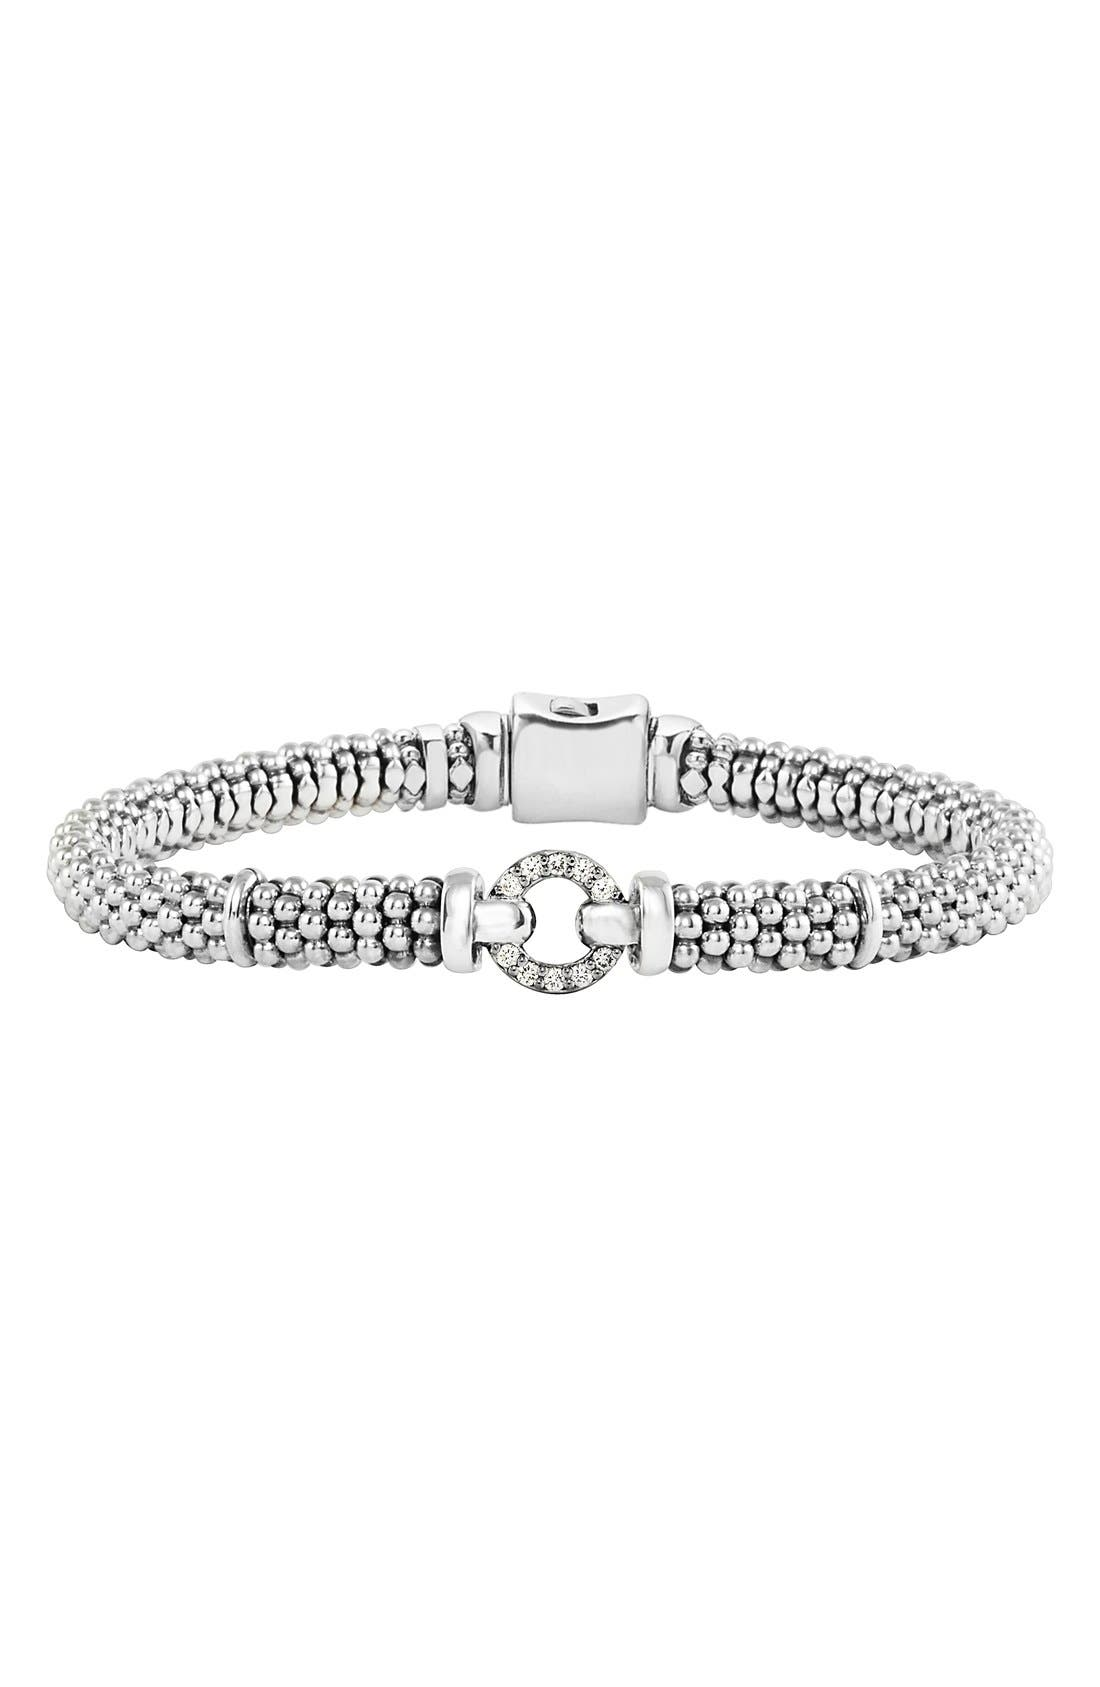 Alternate Image 1 Selected - LAGOS ENSO Diamond Bracelet